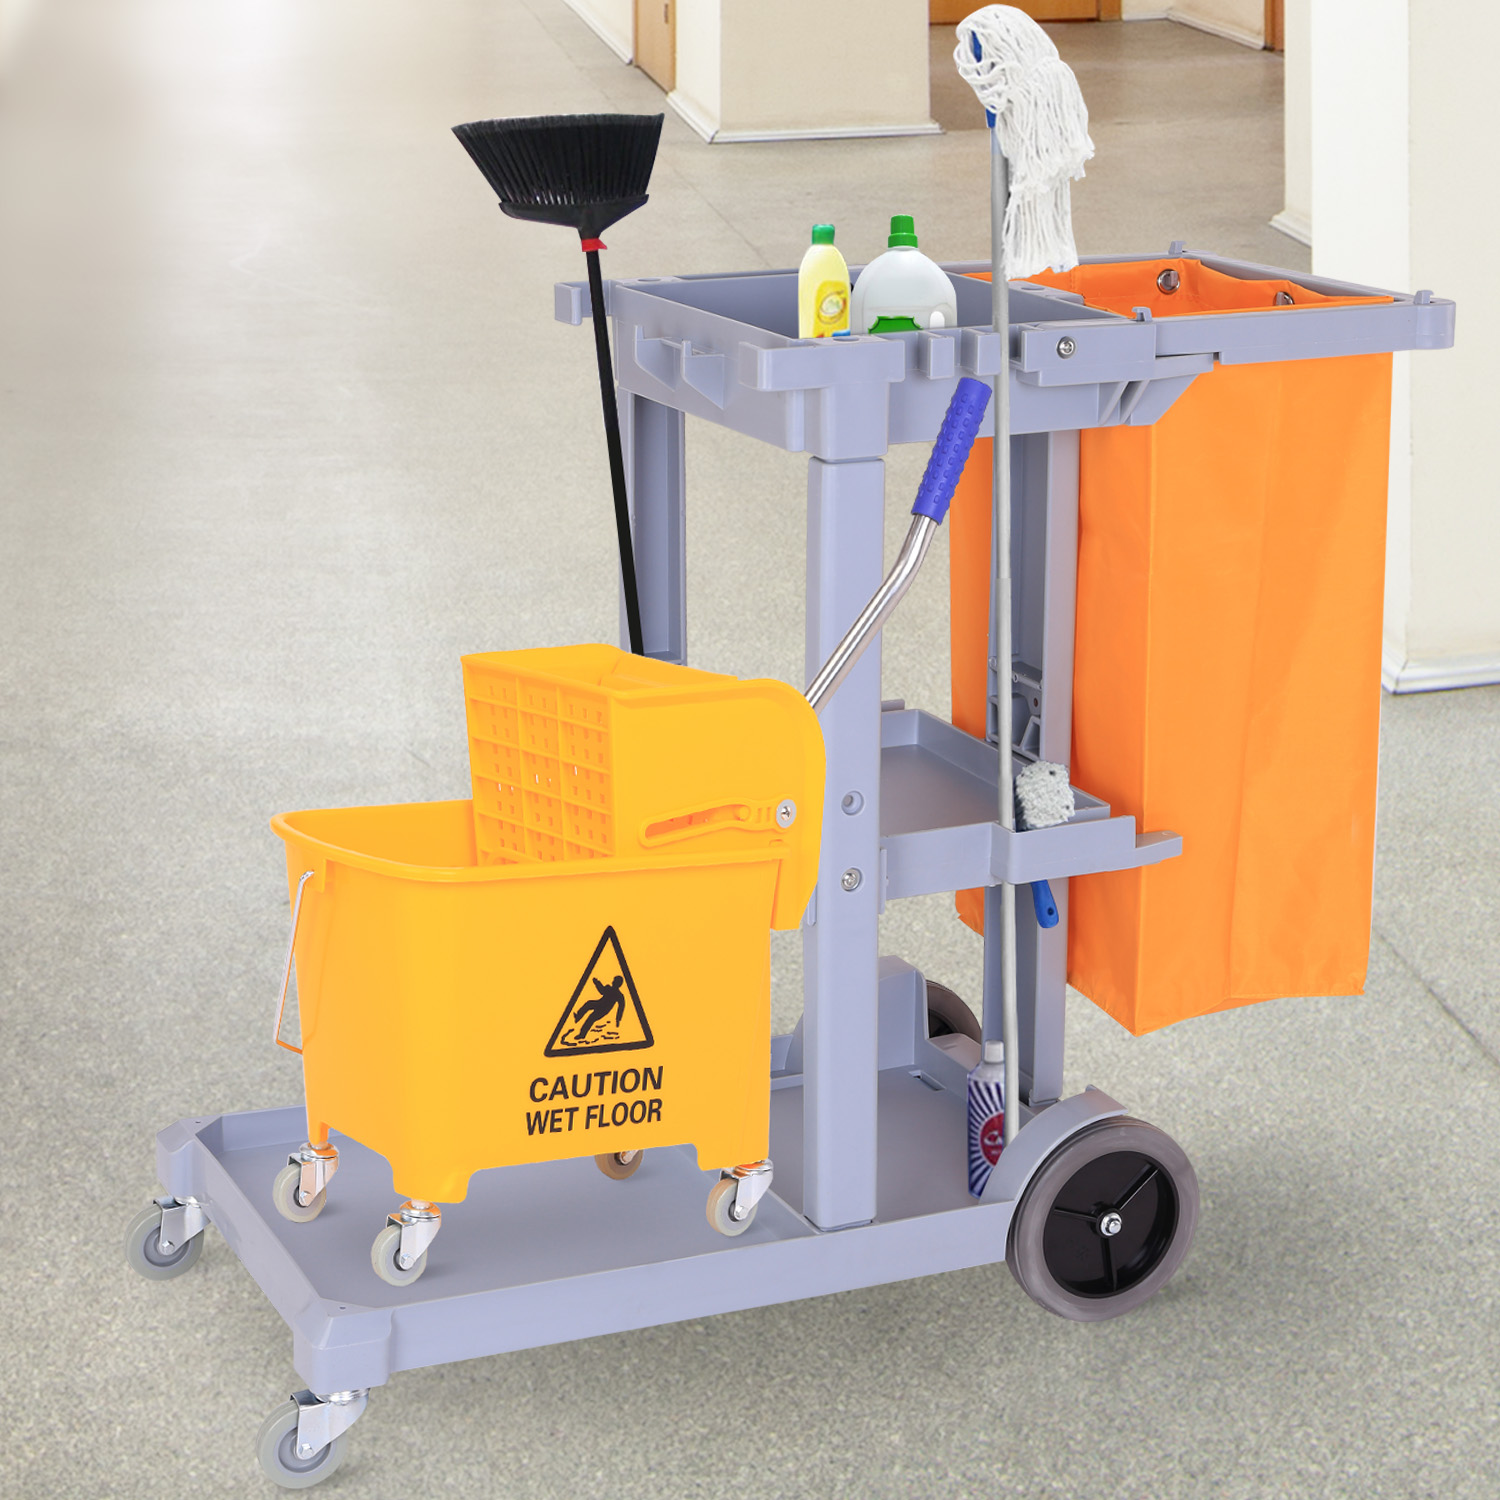 Details About Janitorial Cleaning Cart Rolling Janitor Uitility Cart W/ 3  Shelves & Vinyl Bag